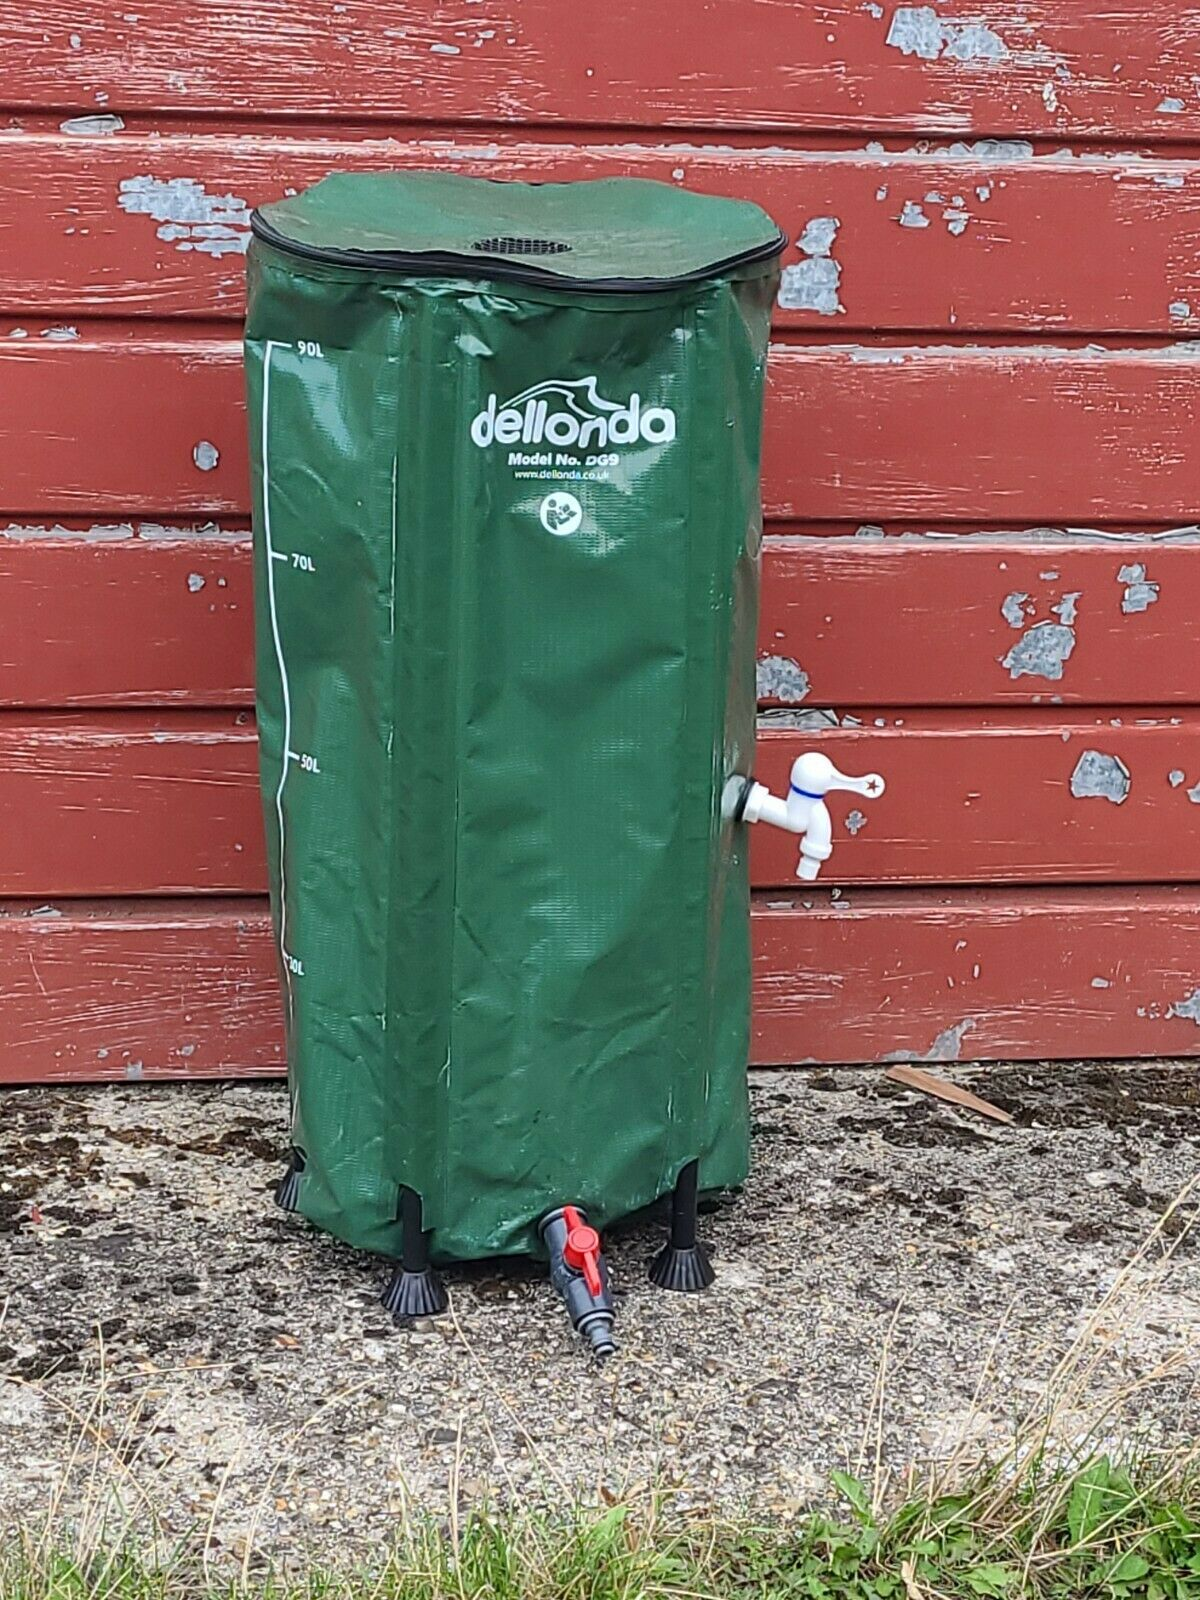 Dellonda Collapsible Fold Up PVC Garden/Hydroponics Water Butt with Zipped Lid .